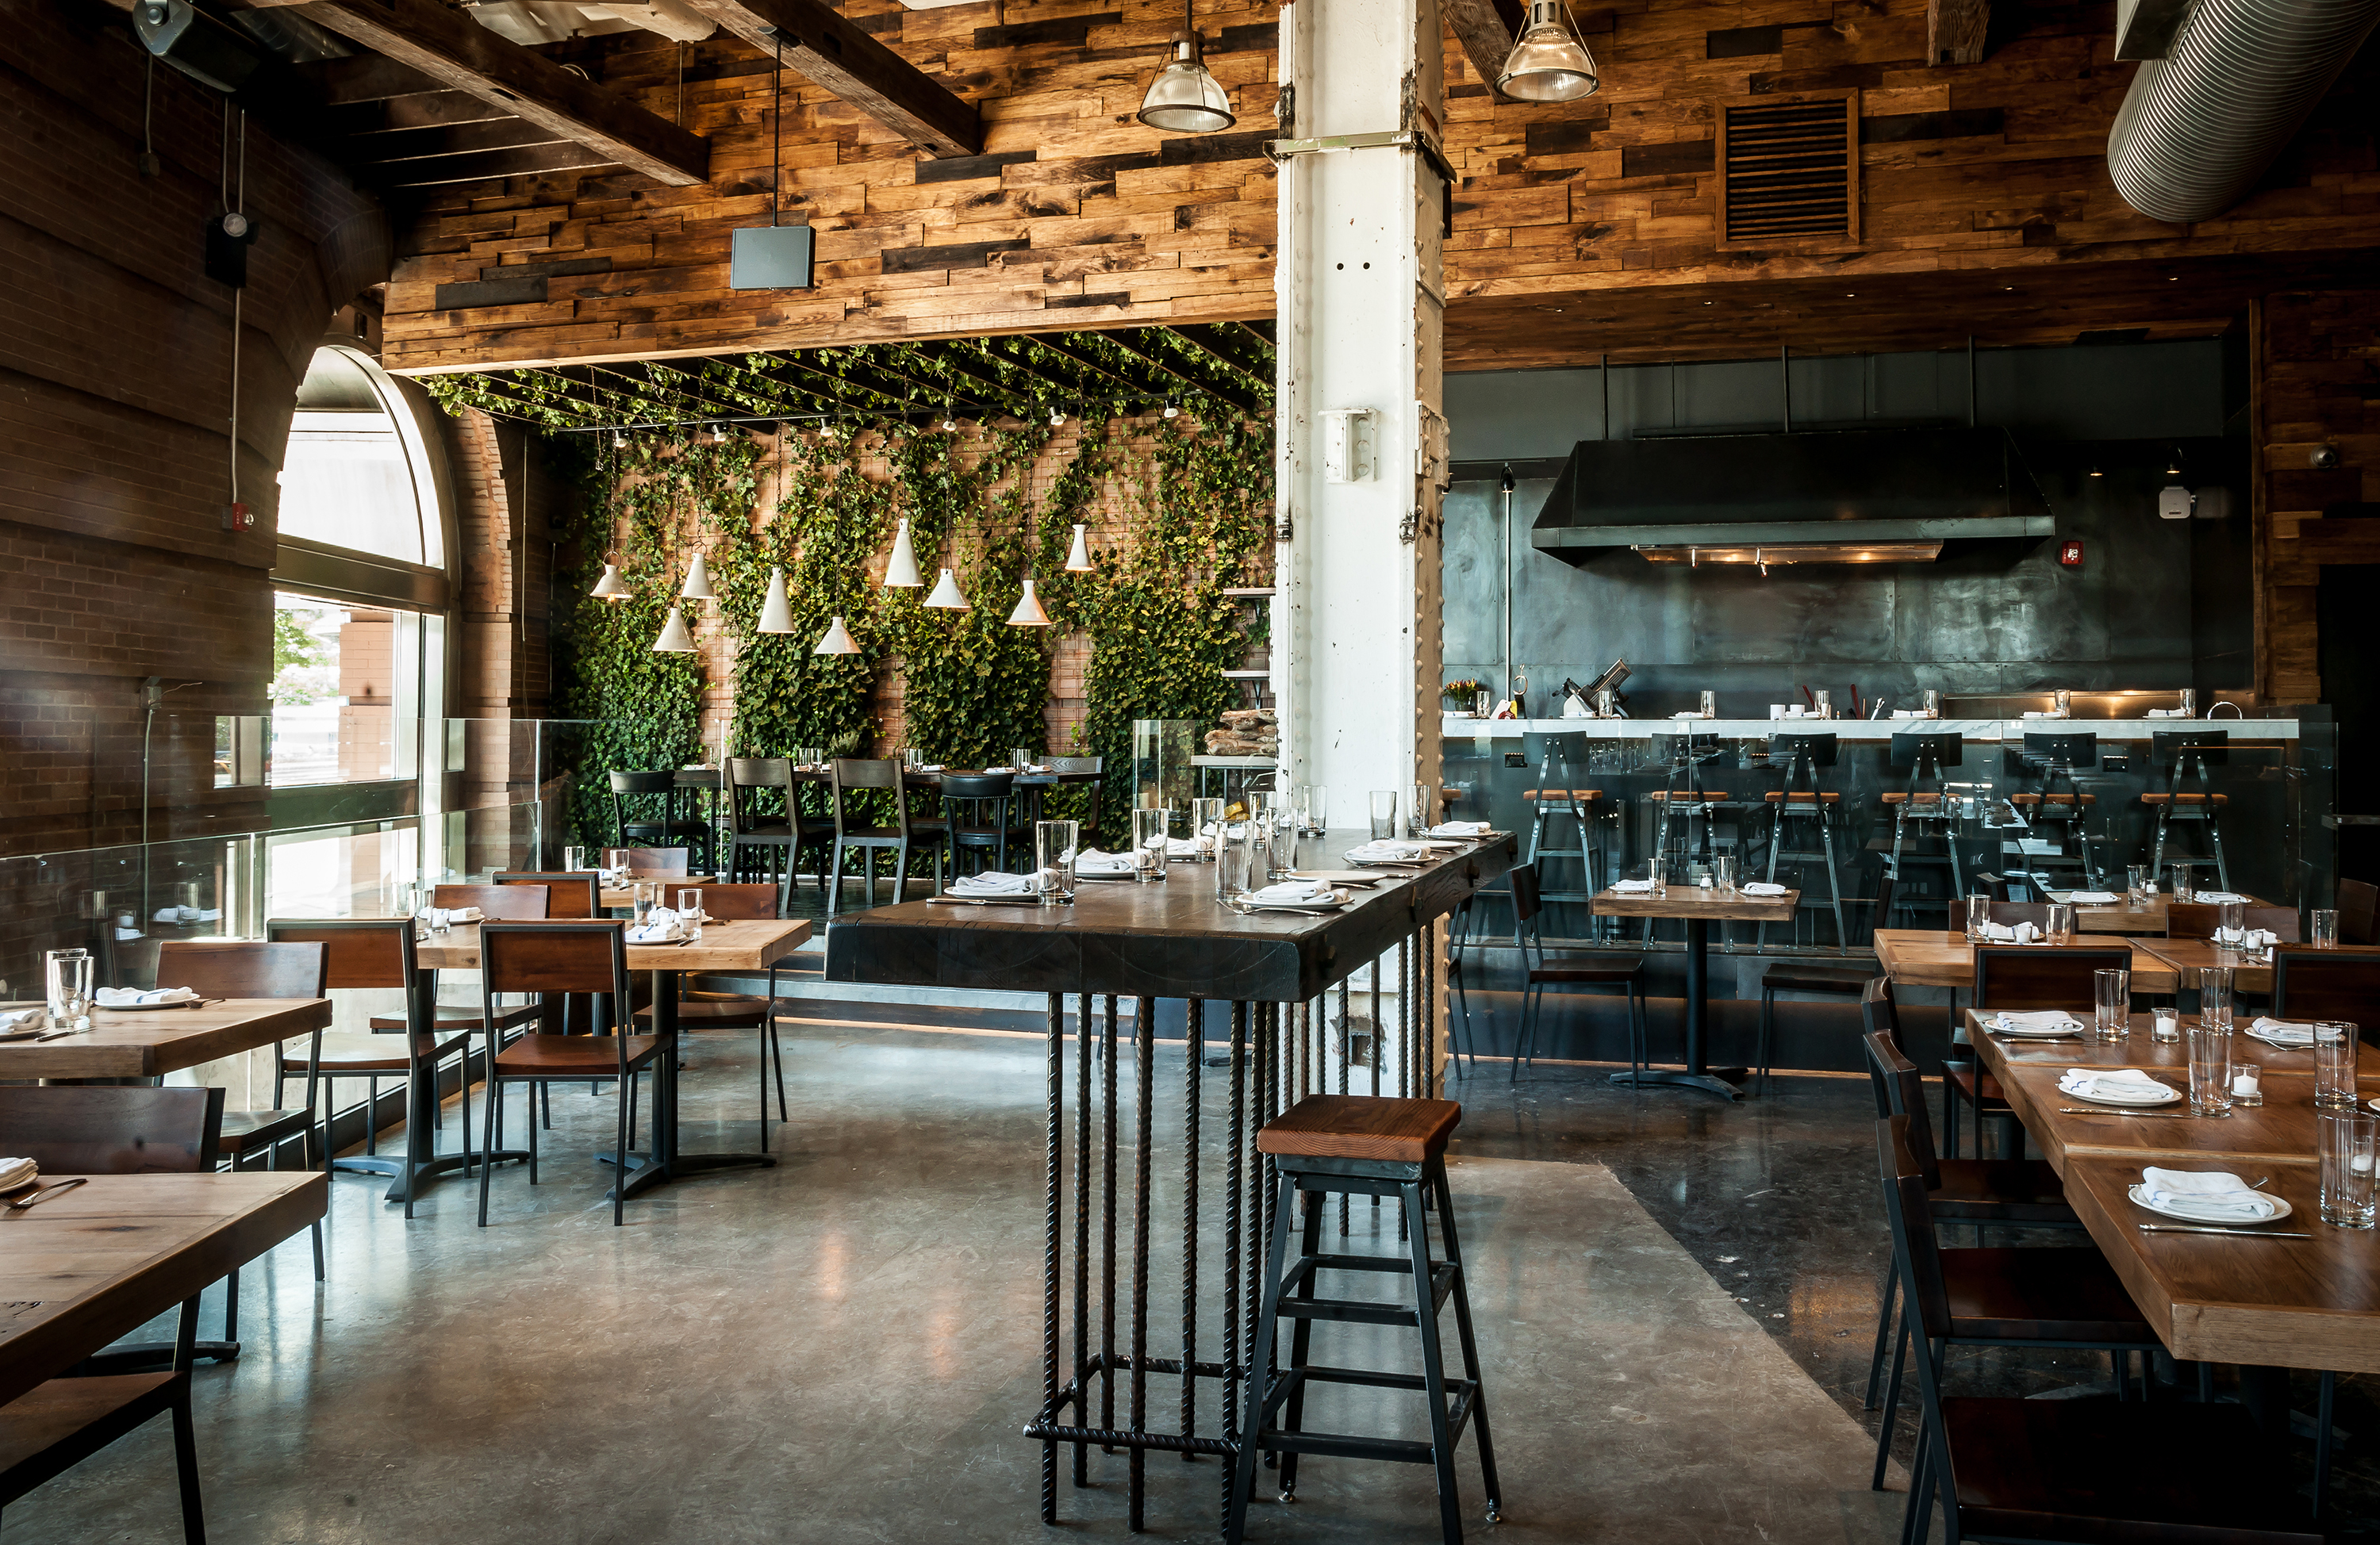 Escape to upscale barcelona at toro nyc daily food wine for New york interior designer